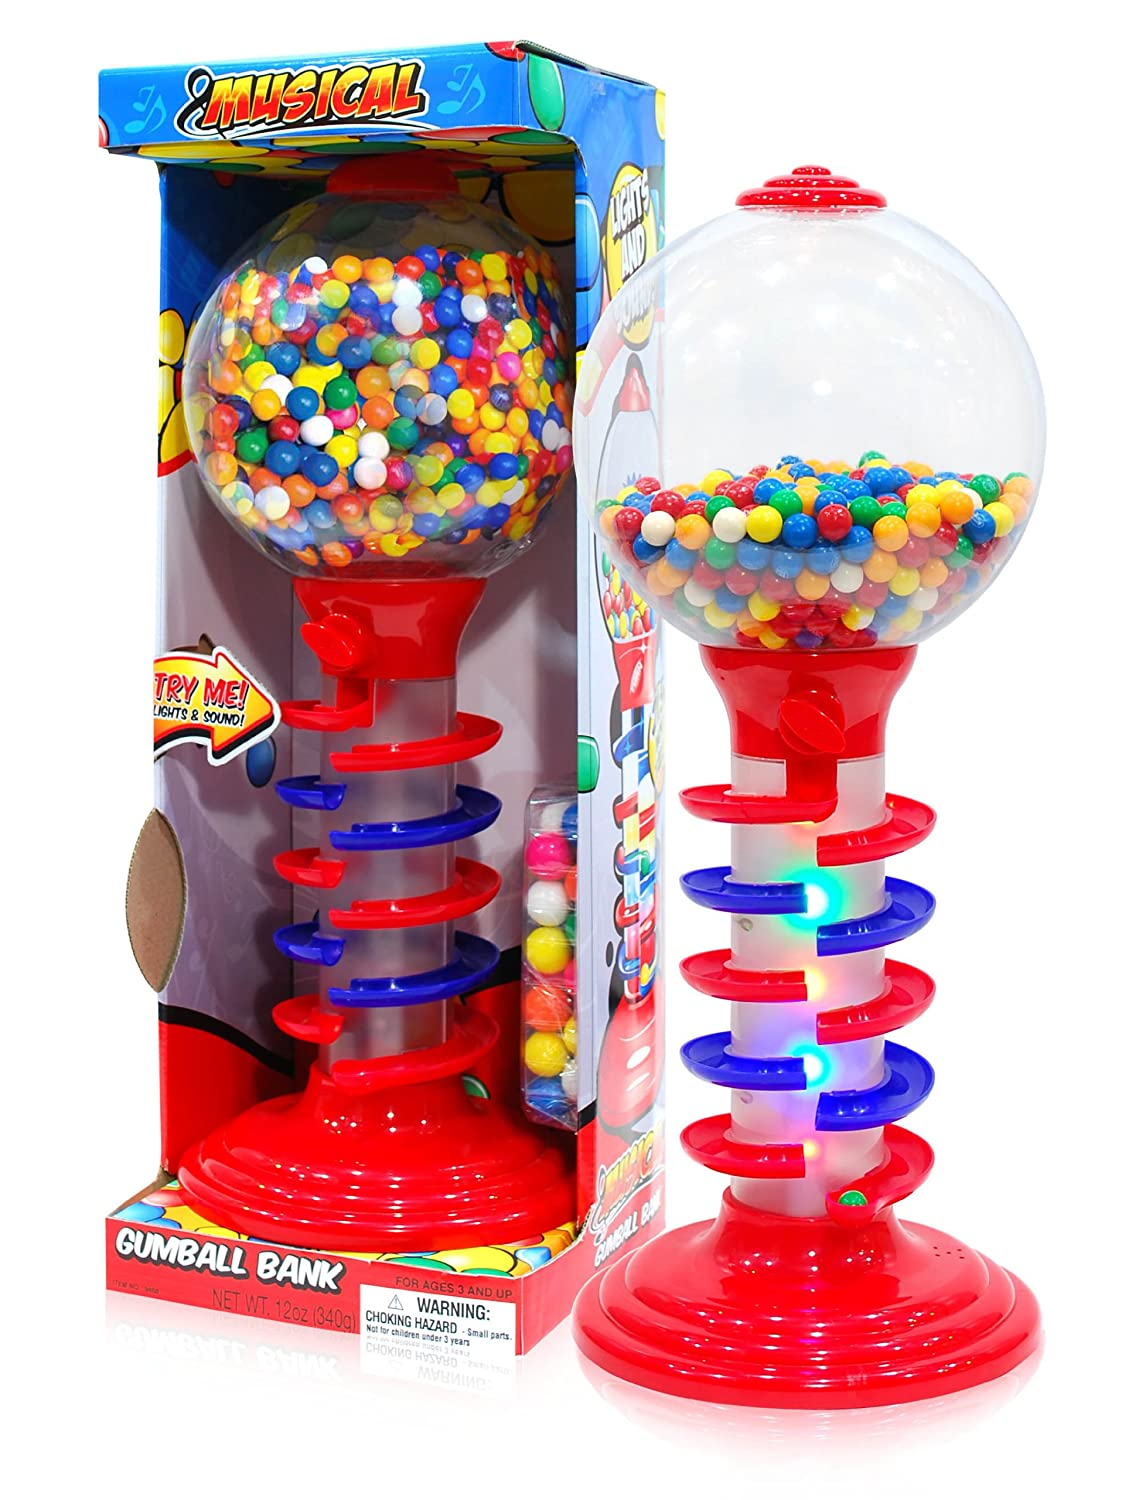 Sweet N Fun Light and Sound Spiral Gumball Bank with 340G Gumballs, 21 21 9468